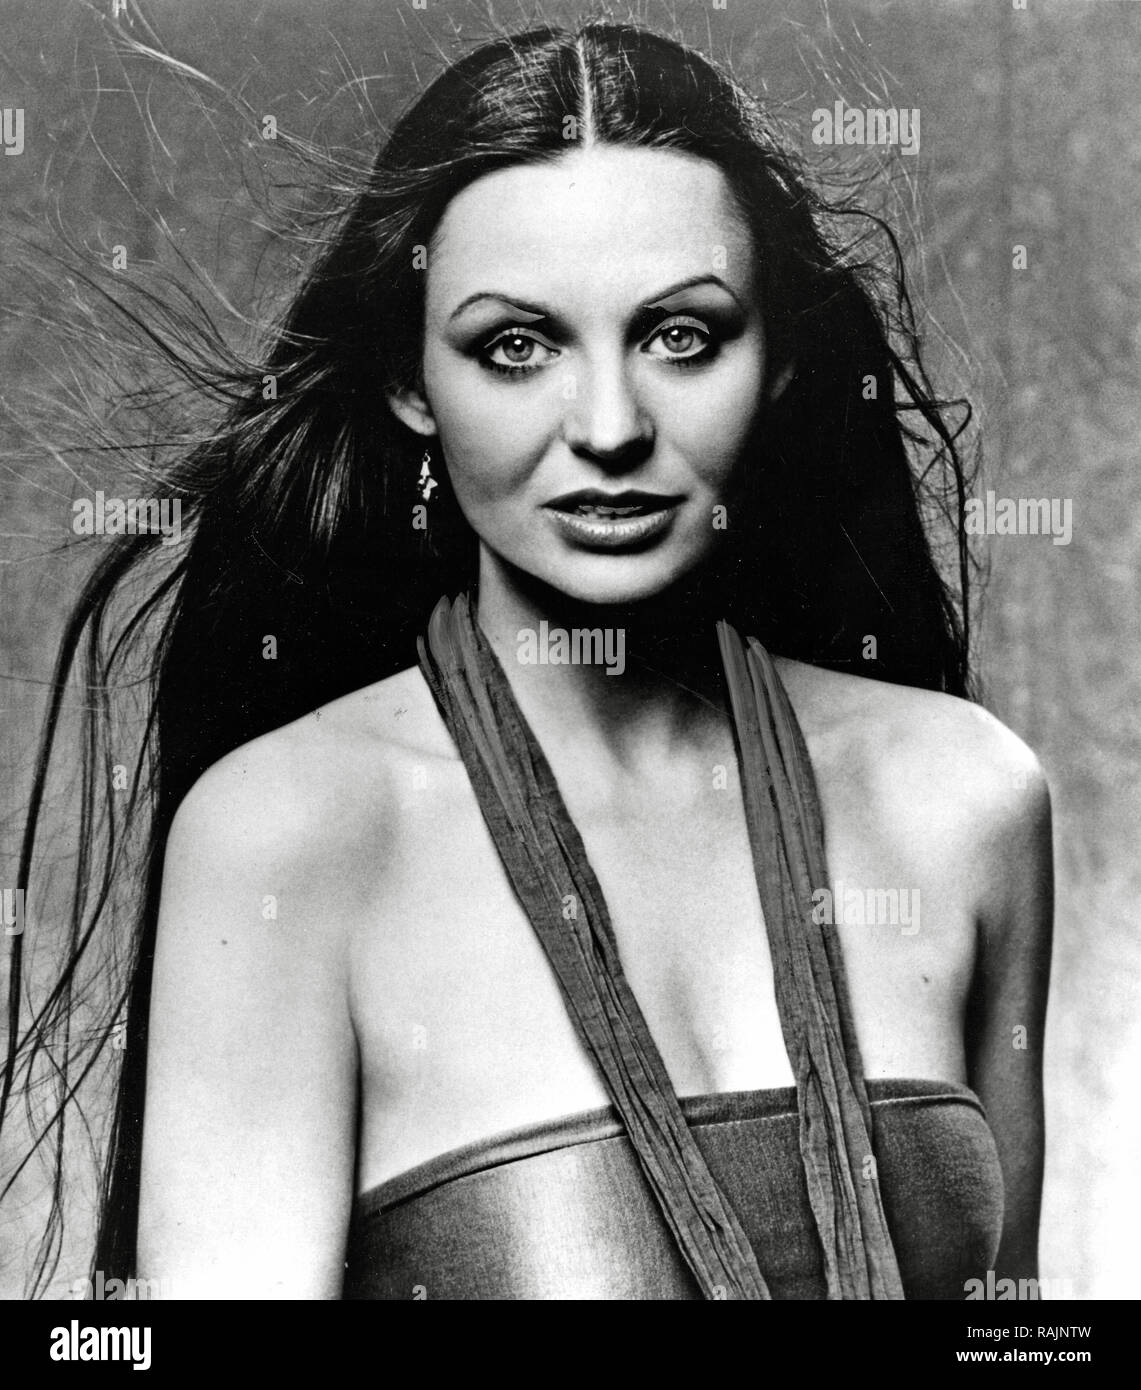 Publicity photo of Crystal Gayle,  circa 1978    File Reference # 33636_942THA - Stock Image